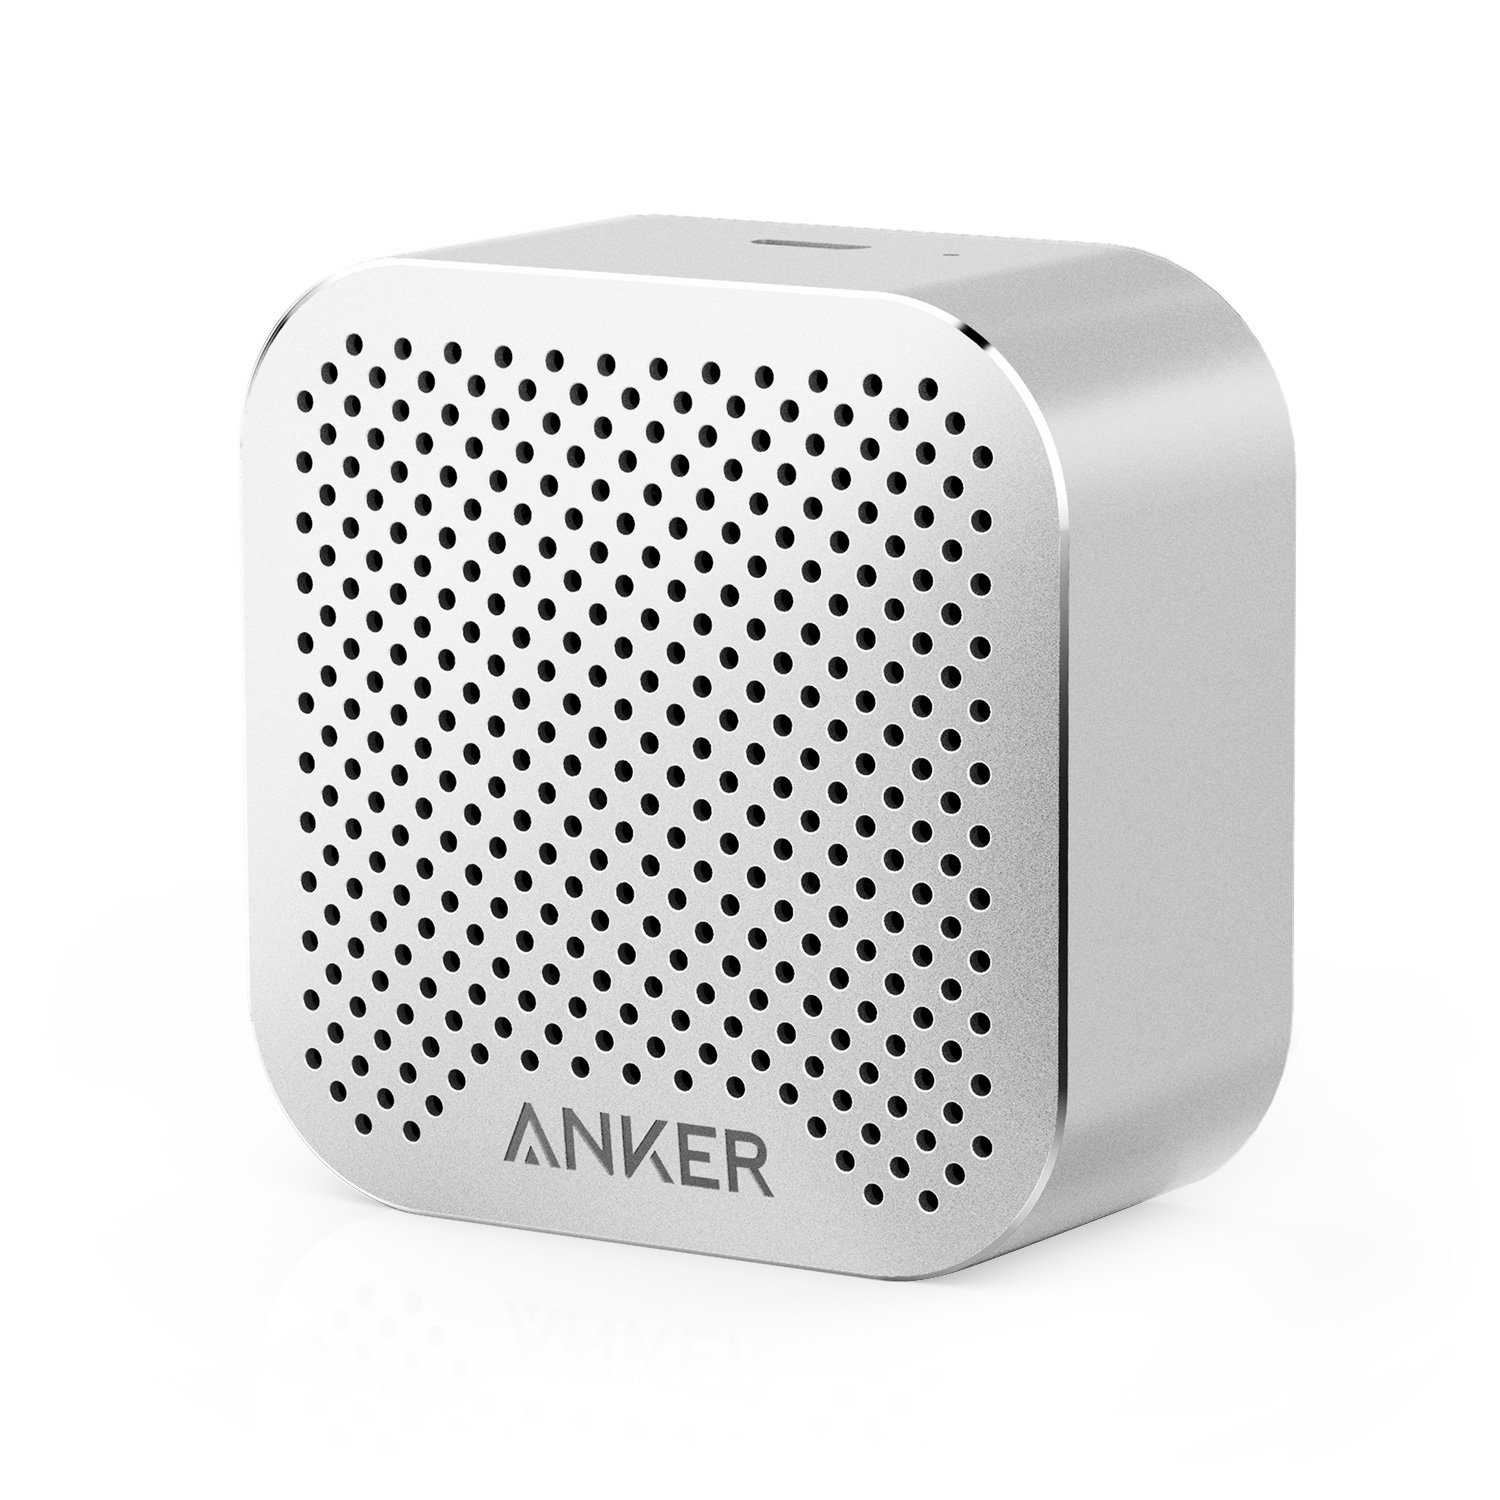 Anker SoundCore Nano Bluetooth Speaker Big Sound, Super-Portable Wireless Speaker Built-in Mic iPhone 7, iPad, Samsung, Nexus, HTC, Laptops More - Silver